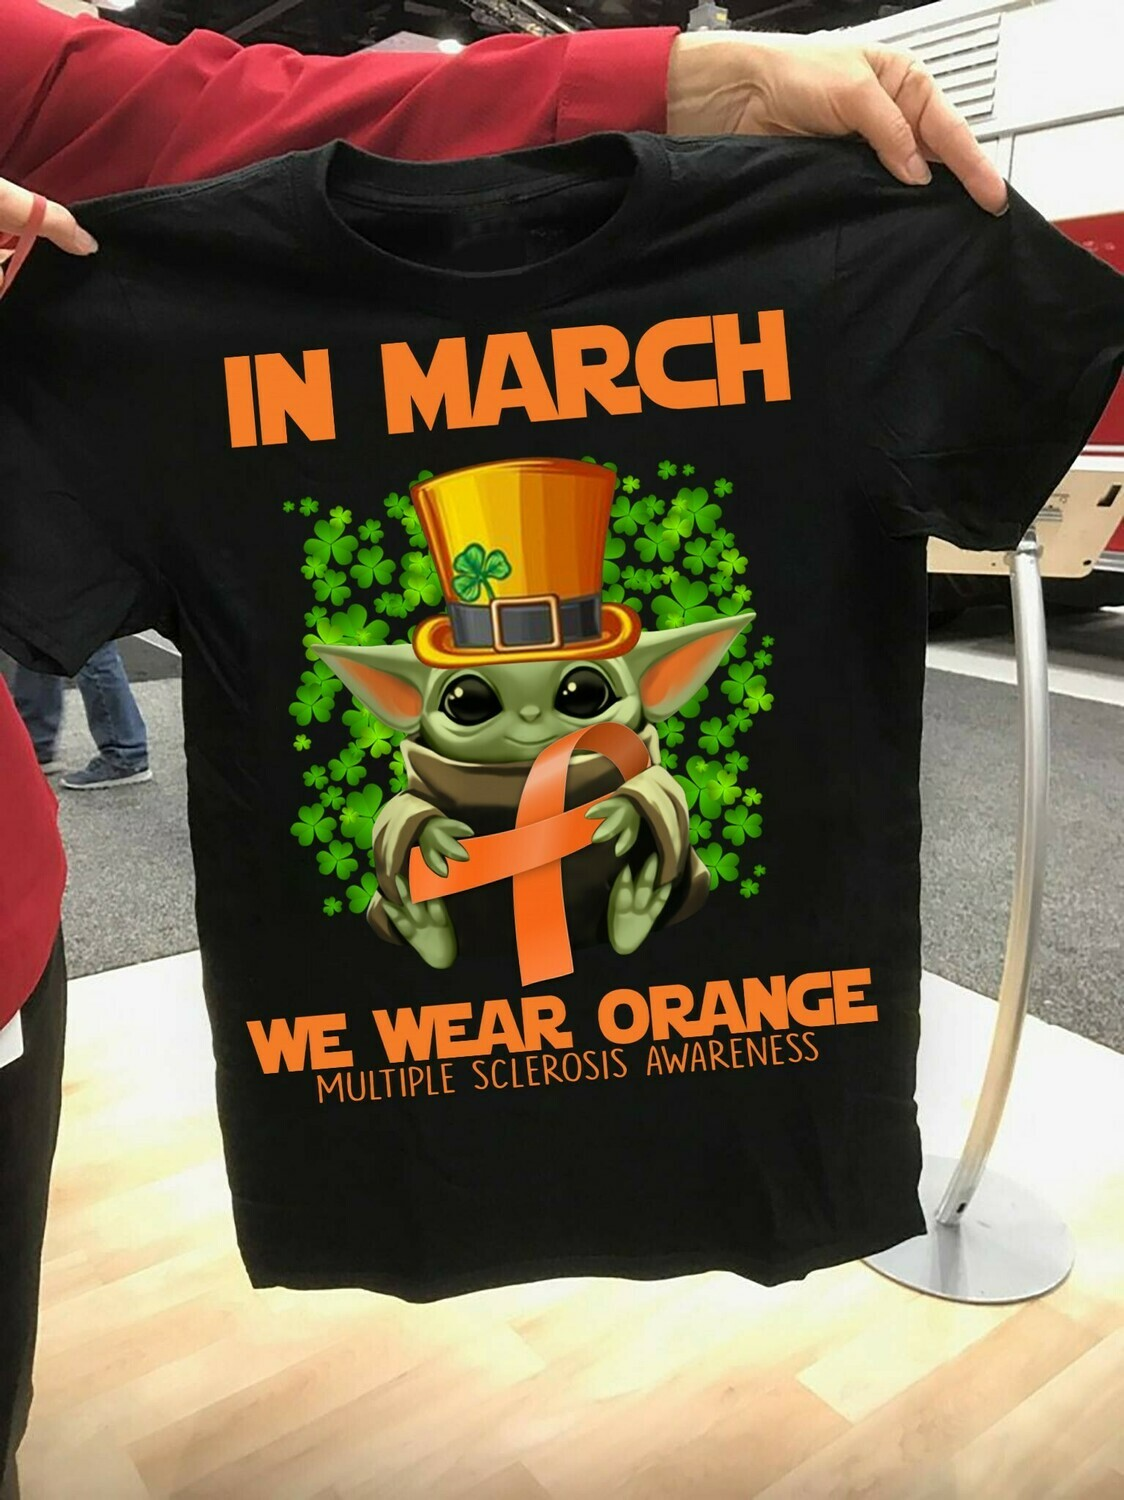 Baby yoda In March We Wear Orange Multiple Sclerosis Awareness St Patrick's Day The Mandalorian Death Watch Star Wars  T-Shirt Hoodie Sweatshirt Sweater Tee Kids Youth Gifts Jolly Family Gifts